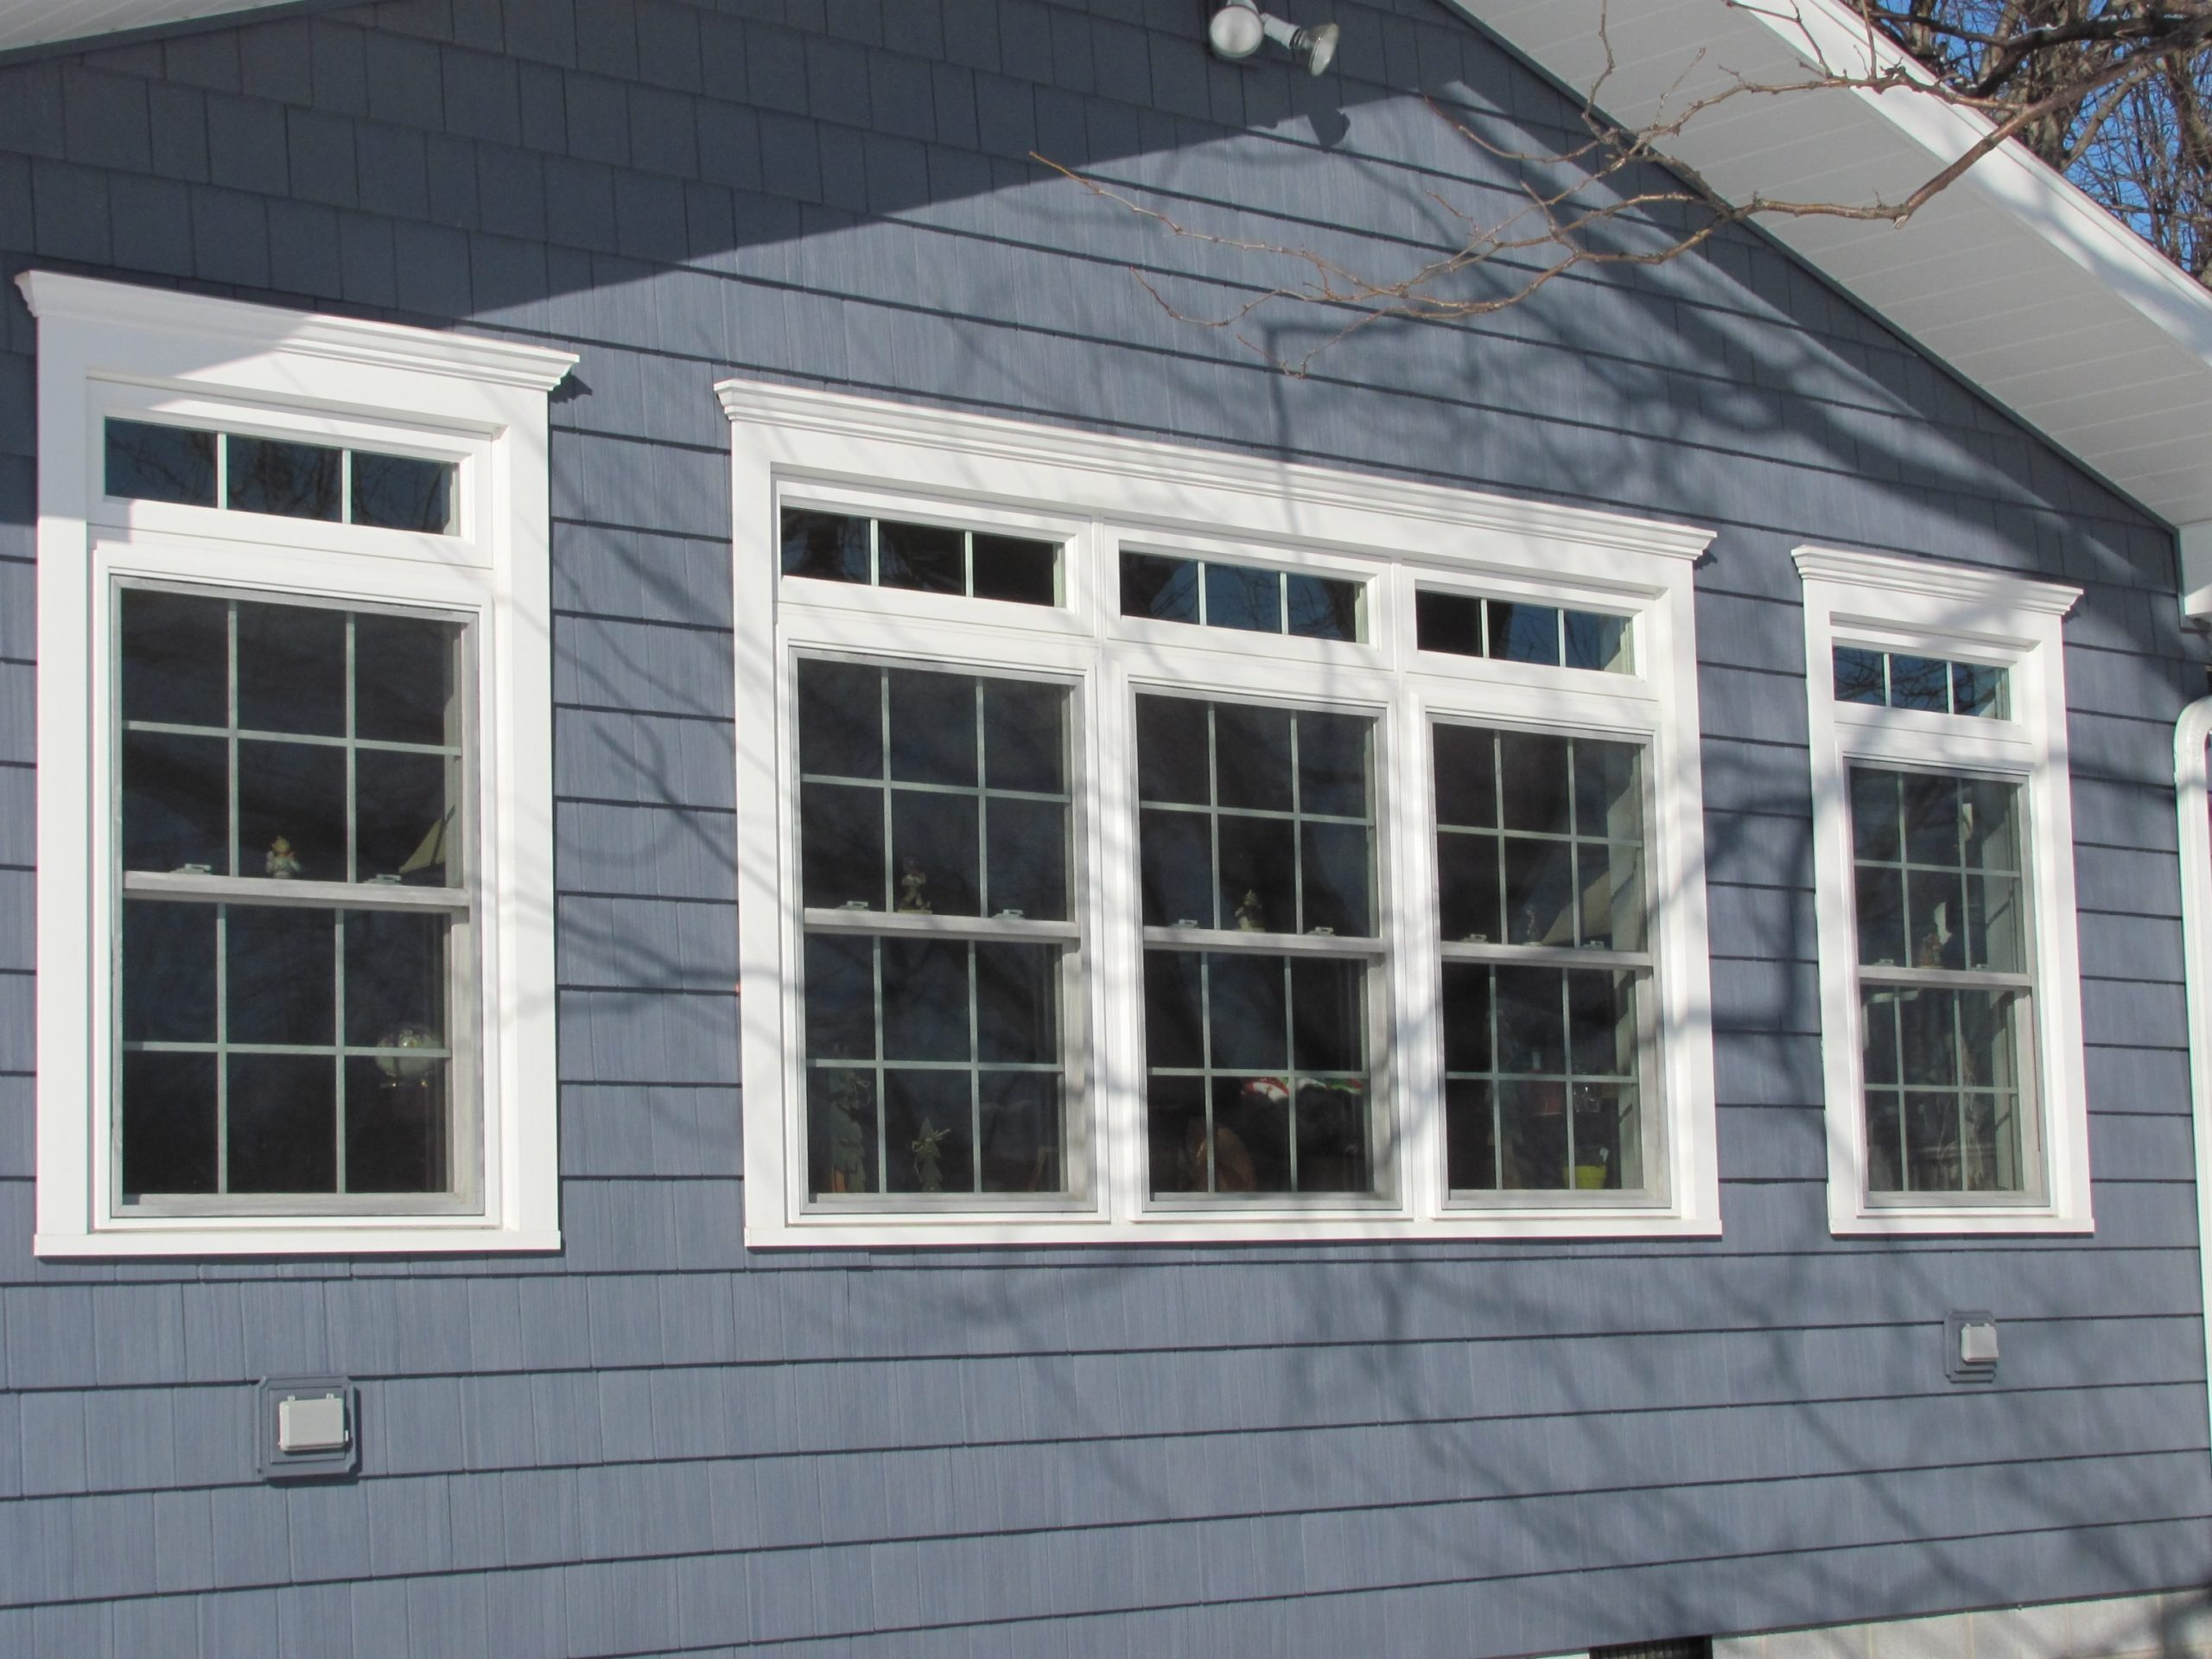 Storm Windows Versus Replacement Windows